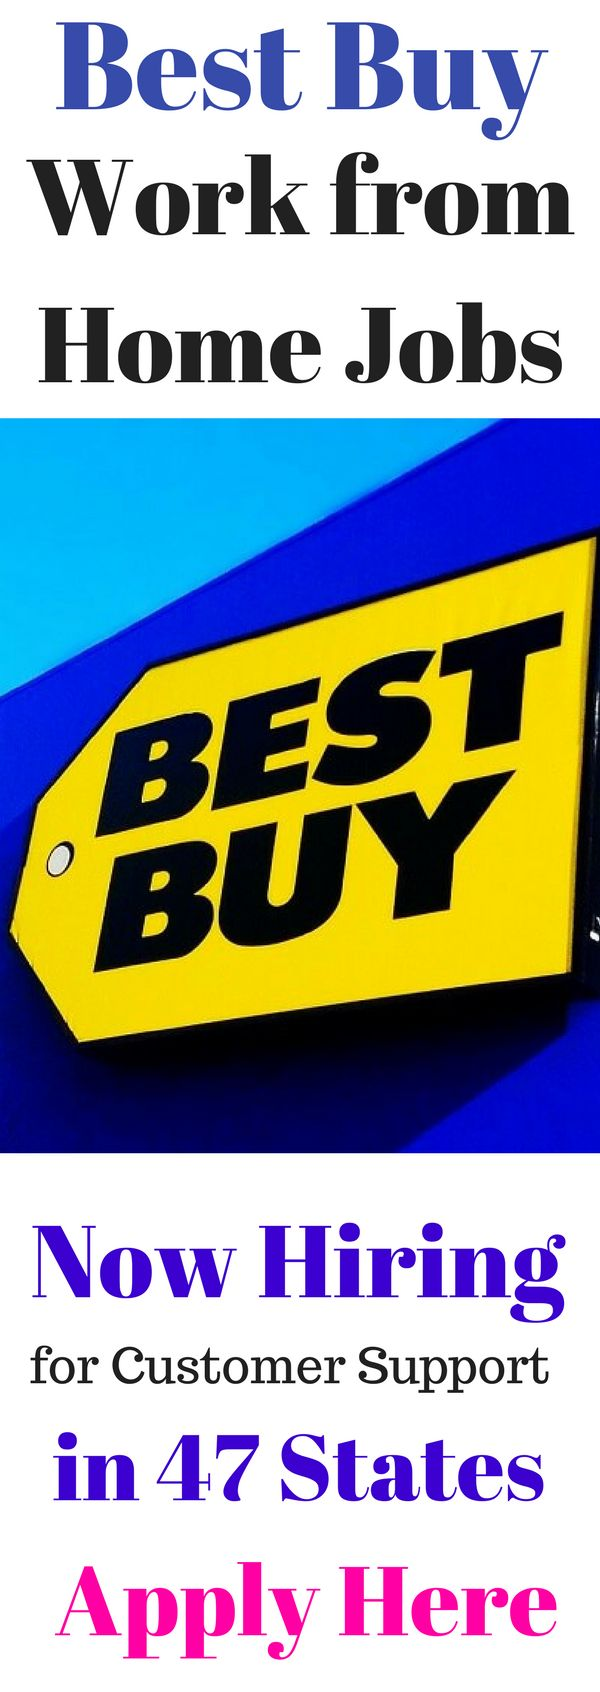 Work from Home Jobs at Best Buy. Legitimate, High Paying Work at Home Jobs from Best Buy. Best Buy is Now Hiring Stay at Home Moms, Work at Home Moms and Dads for Customer Support Positions in 47 States.